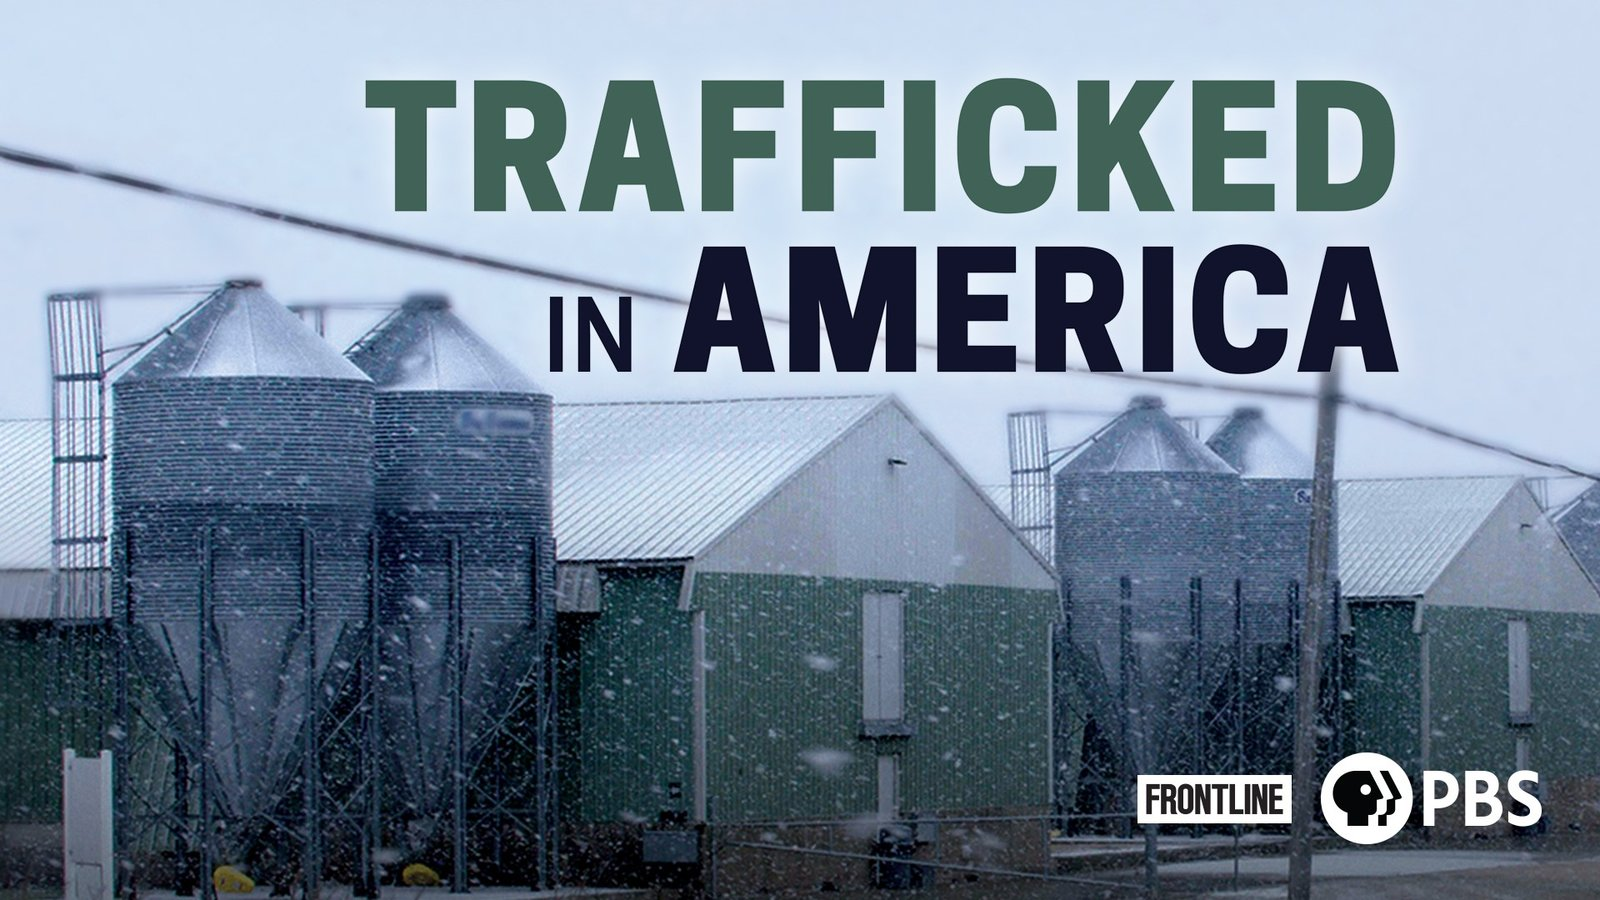 Trafficked in America